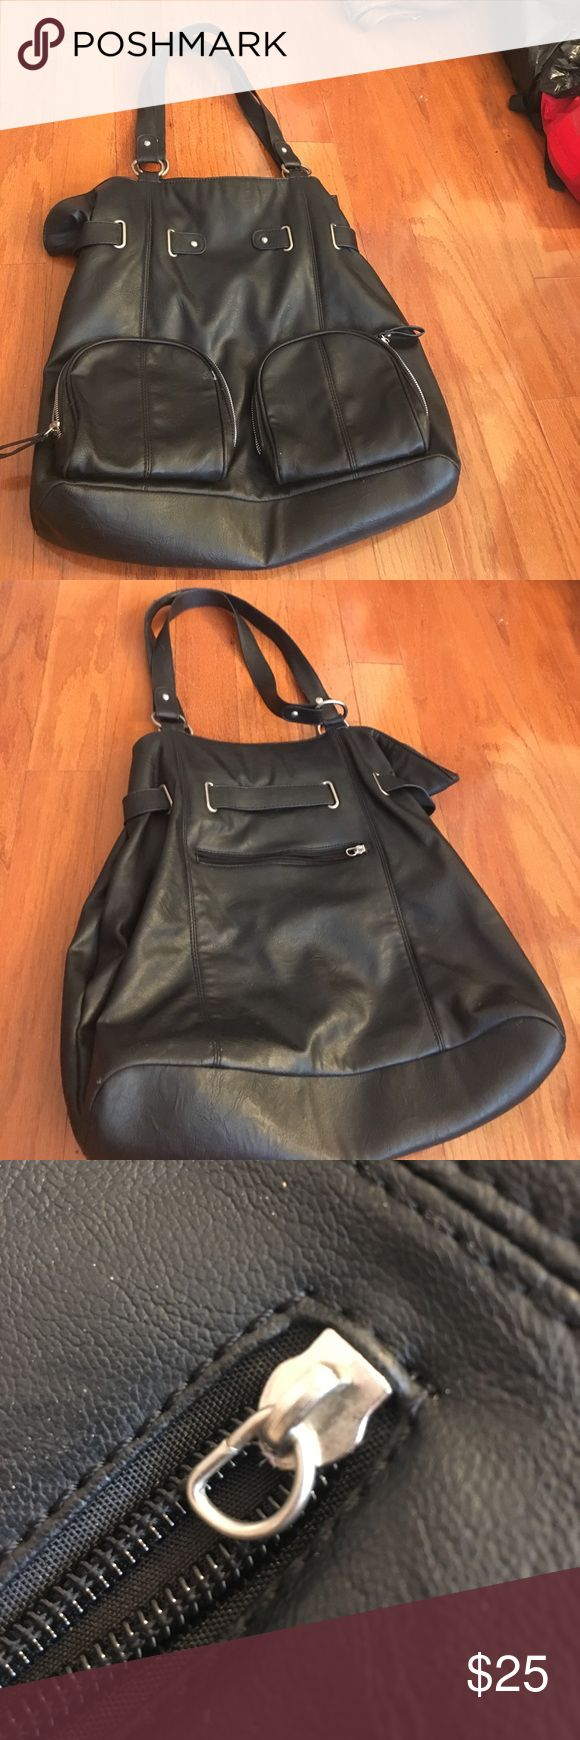 Black purse Some damage but otherwise in really good condition Nordstrom Bags Shoulder Bags